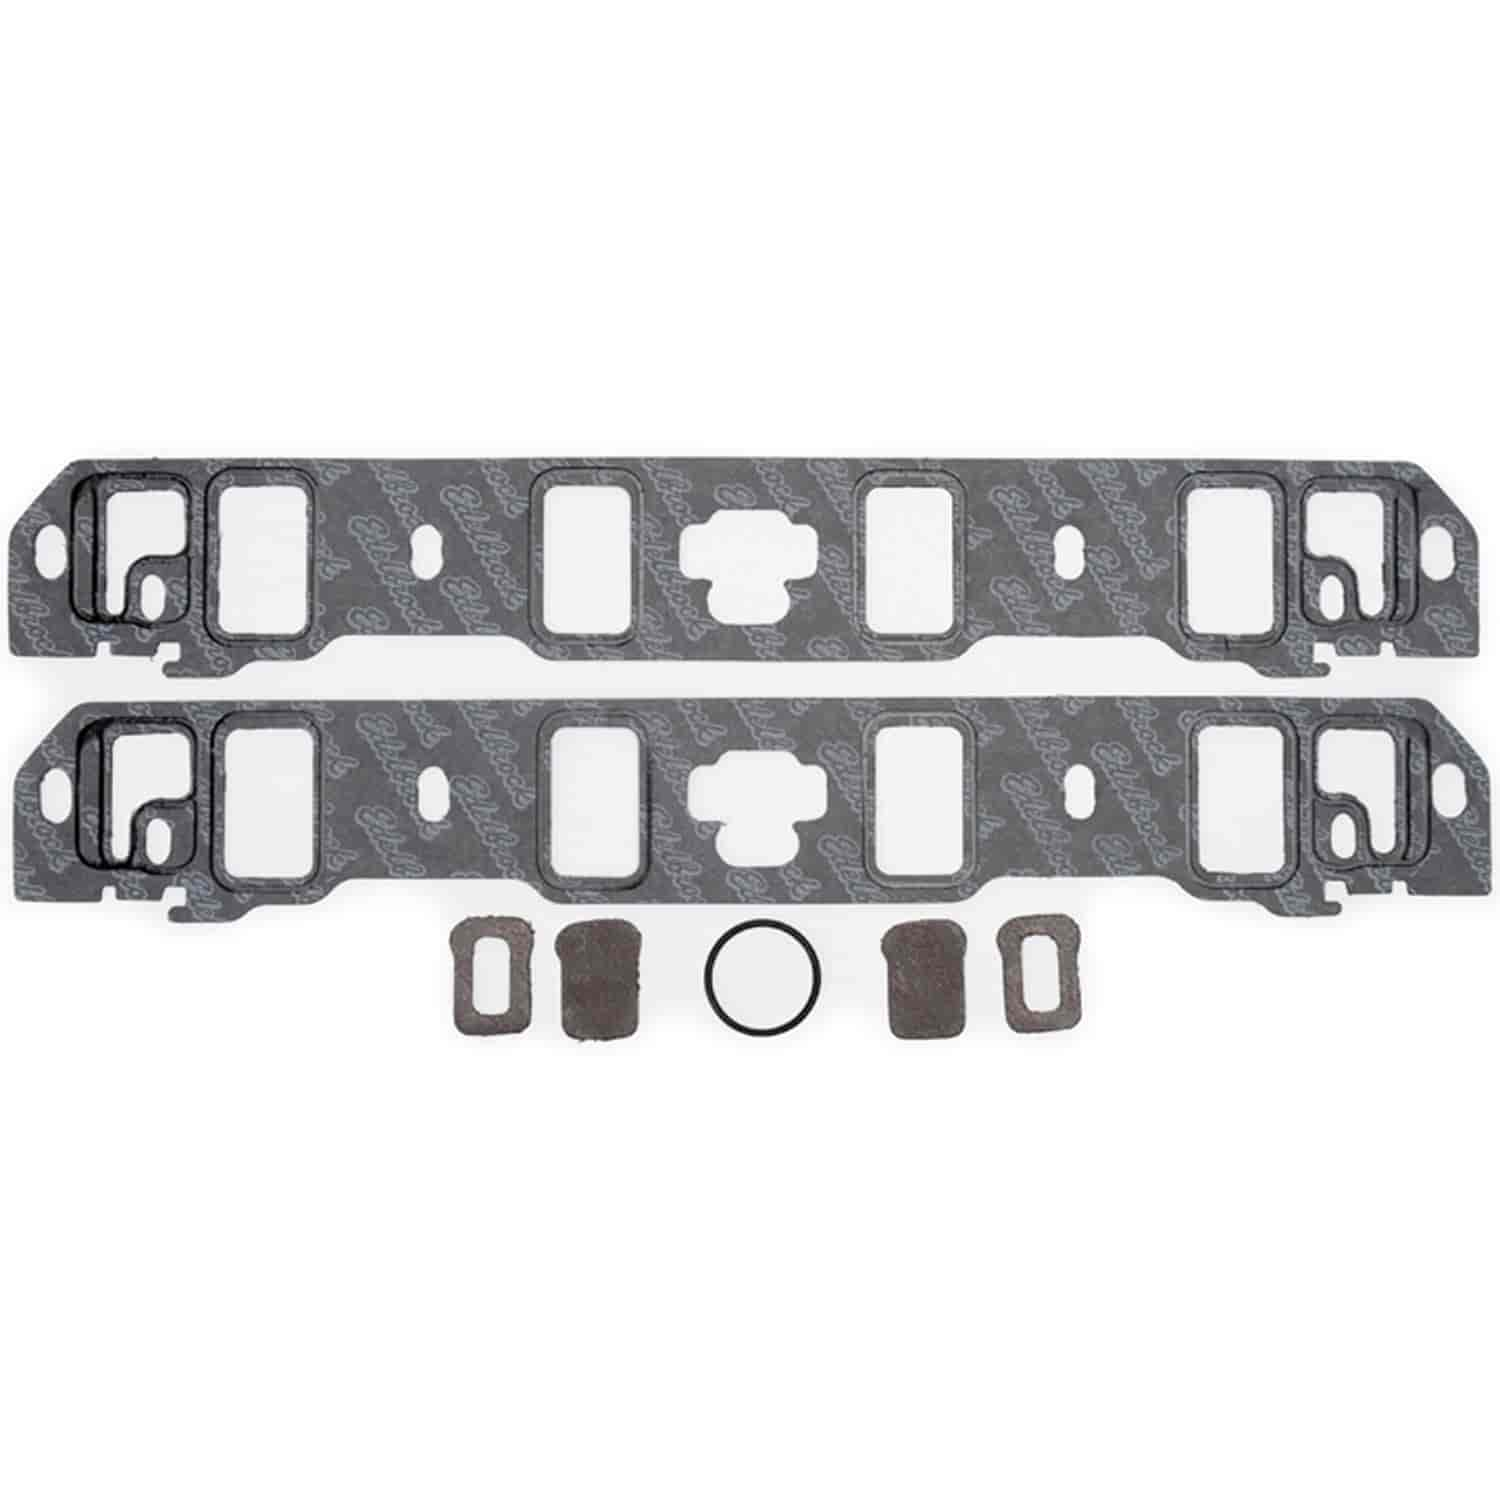 Edelbrock 7220 Intake Gaskets 1963-96 Ford 289-302 Small